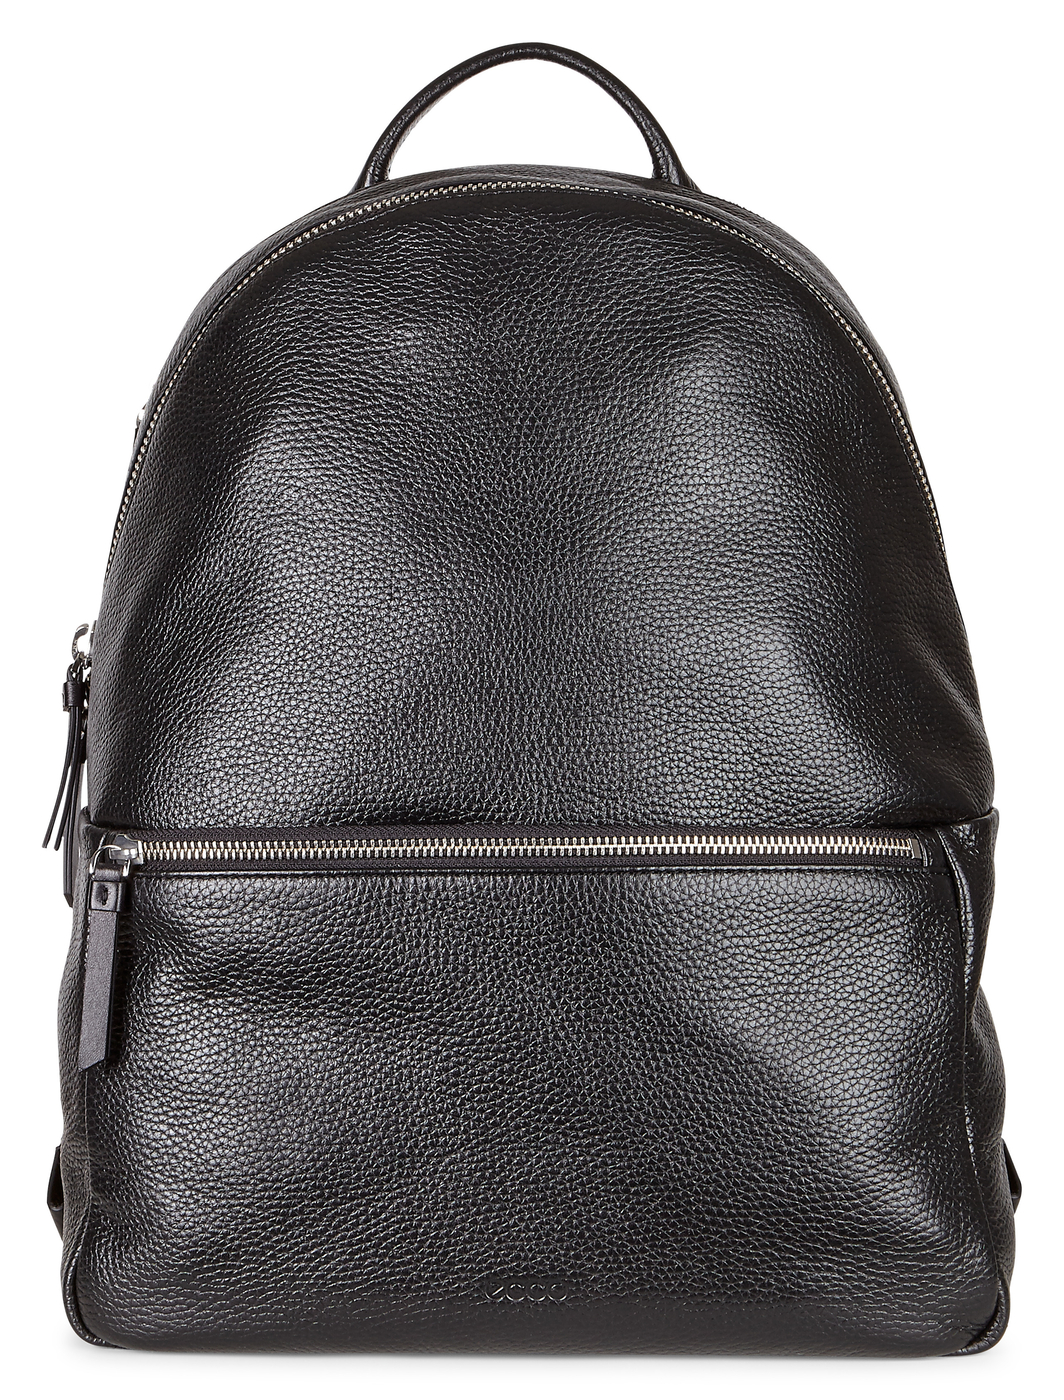 ECCO SP3 Large Backpack